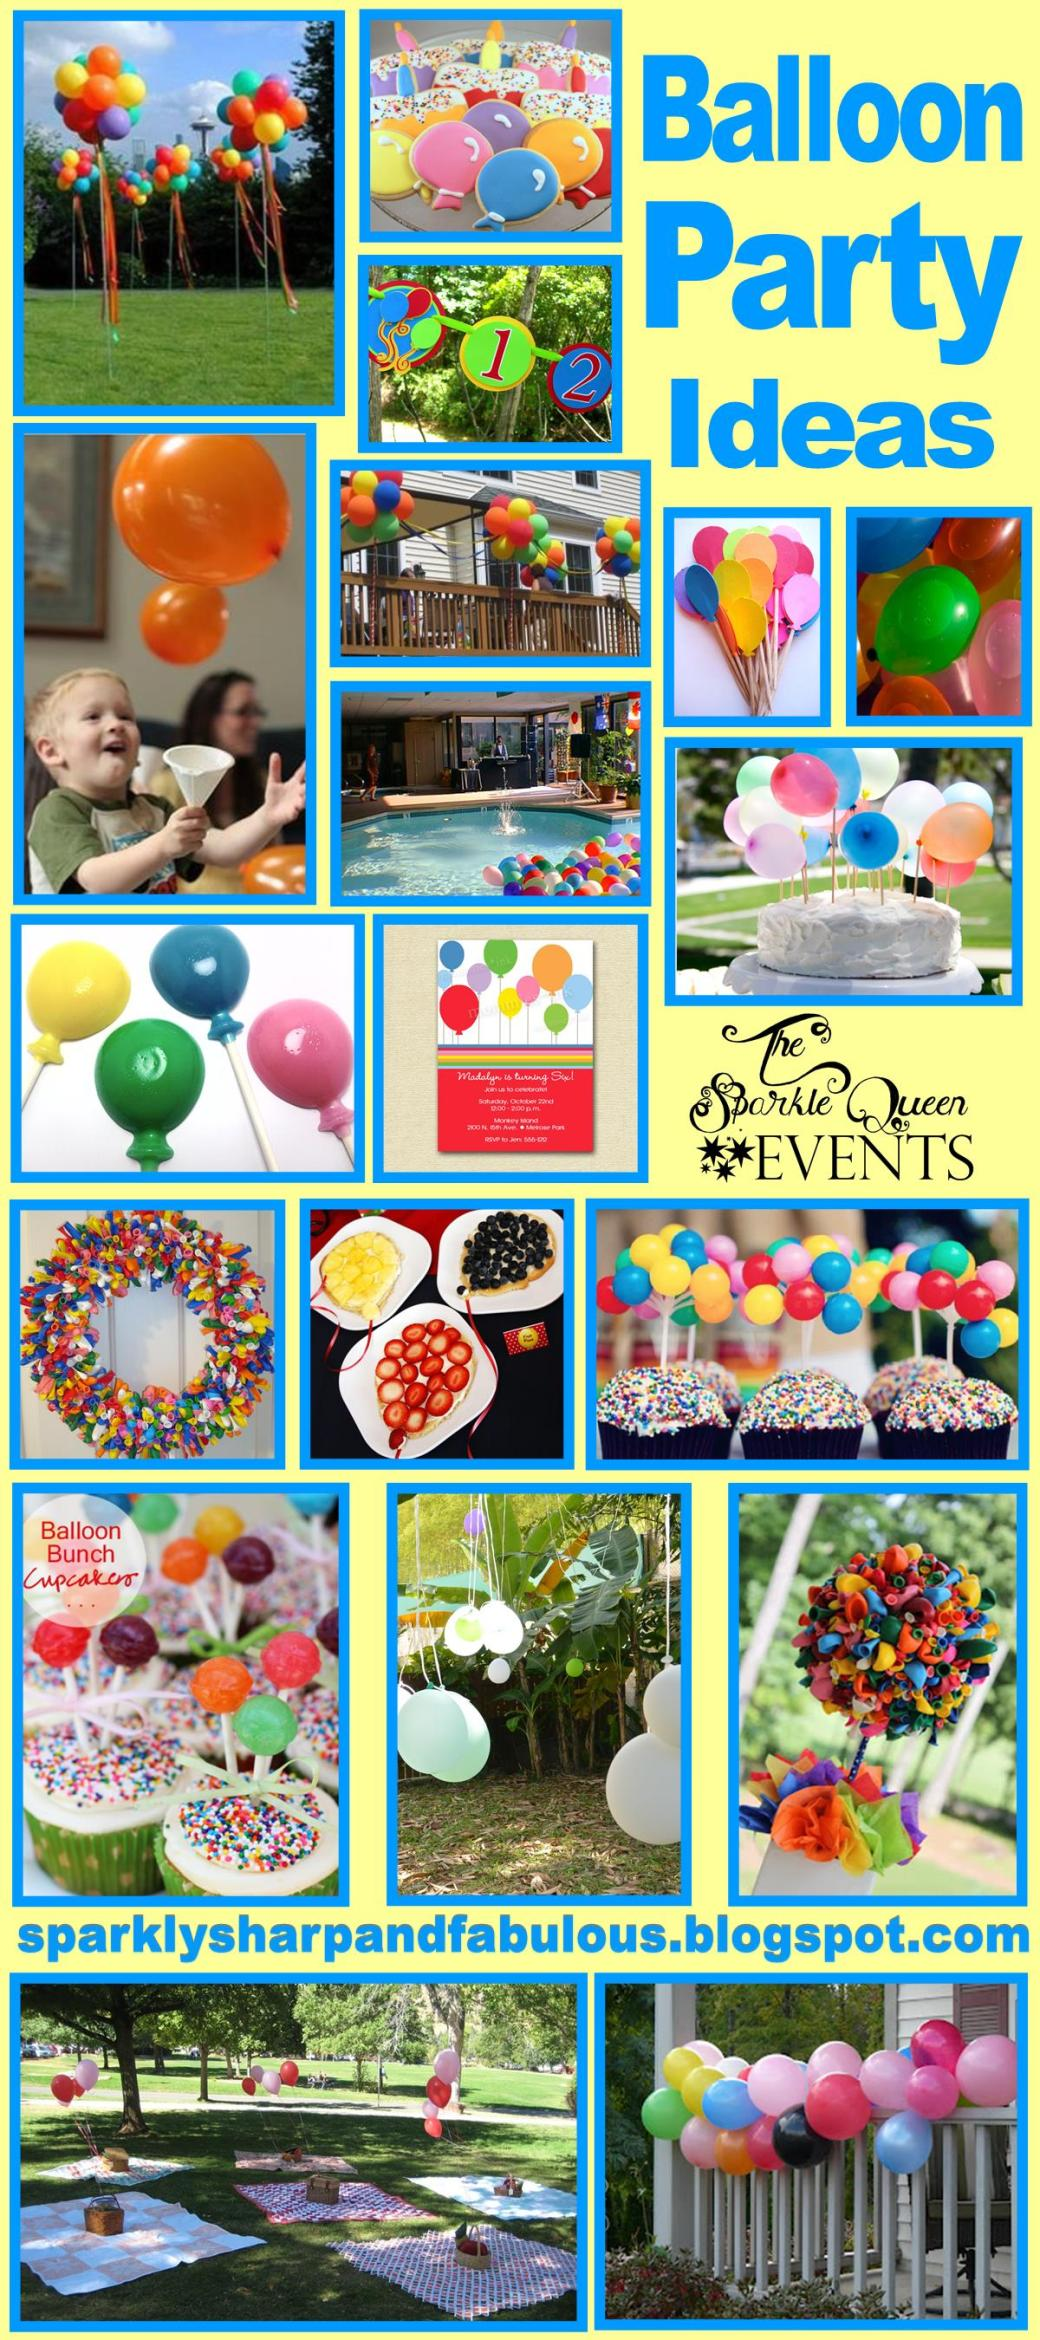 Balloon Party Ideas